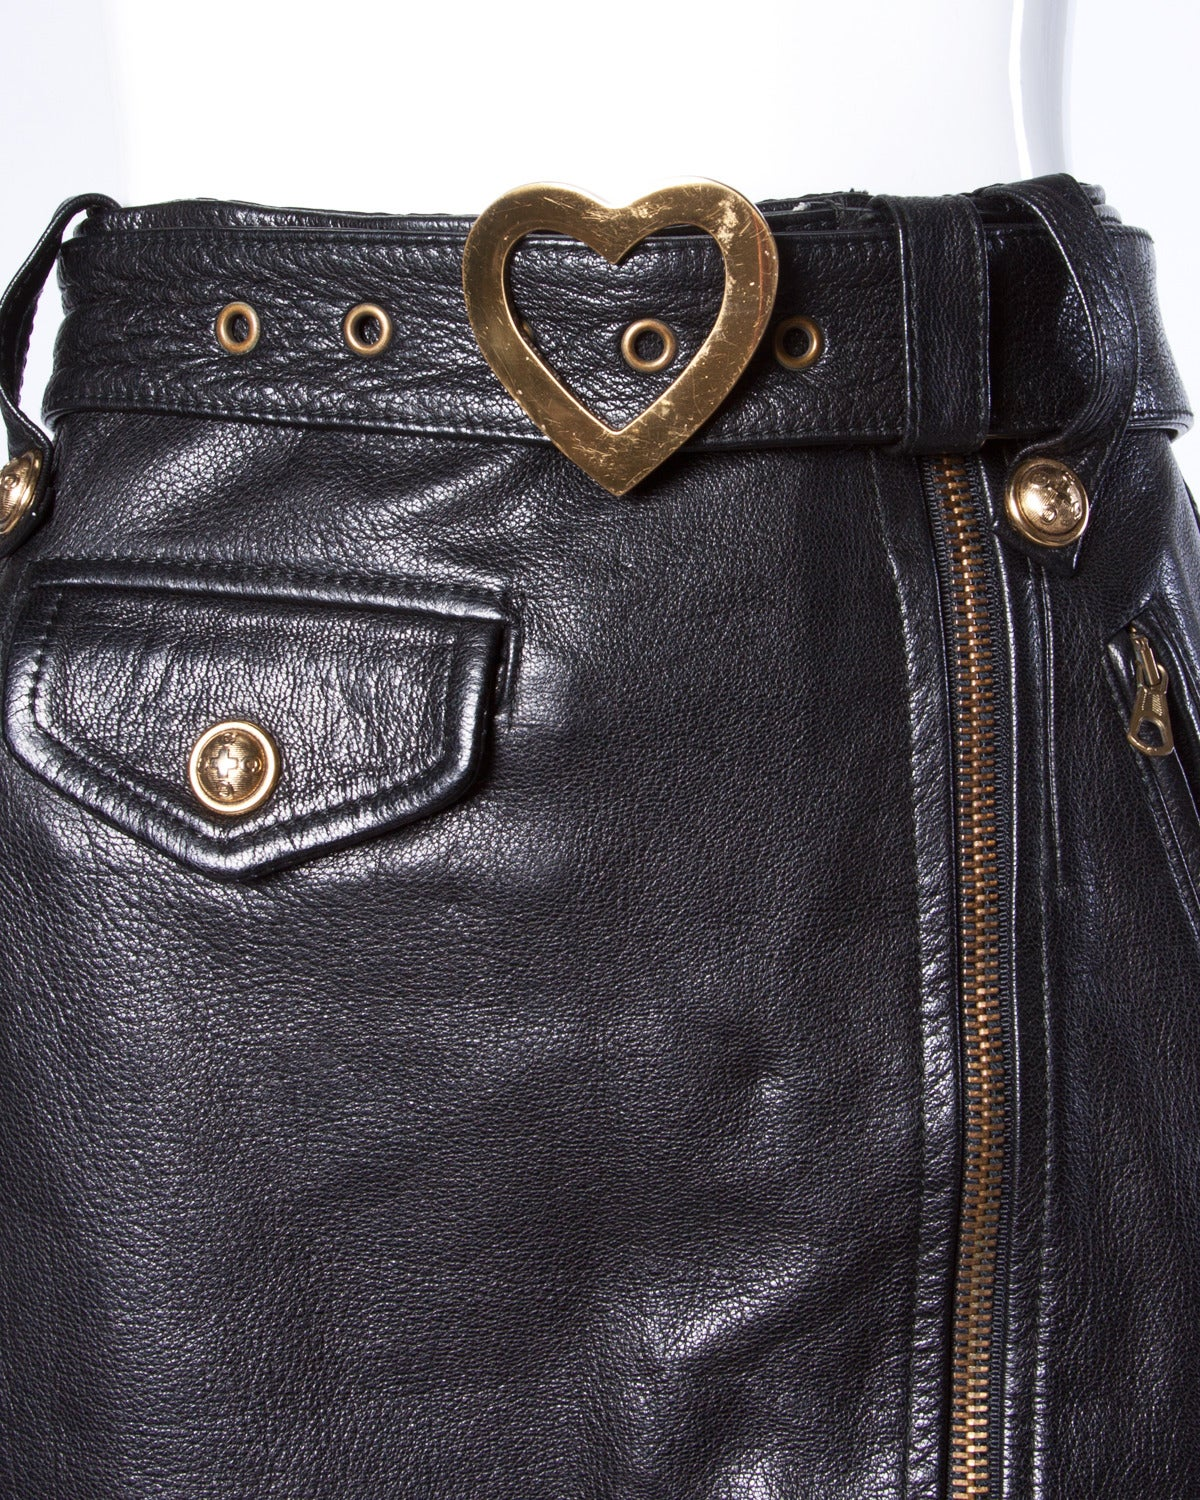 Moschino Vintage 1990s 90s Black Leather Skirt with Heart Belt Buckle 2